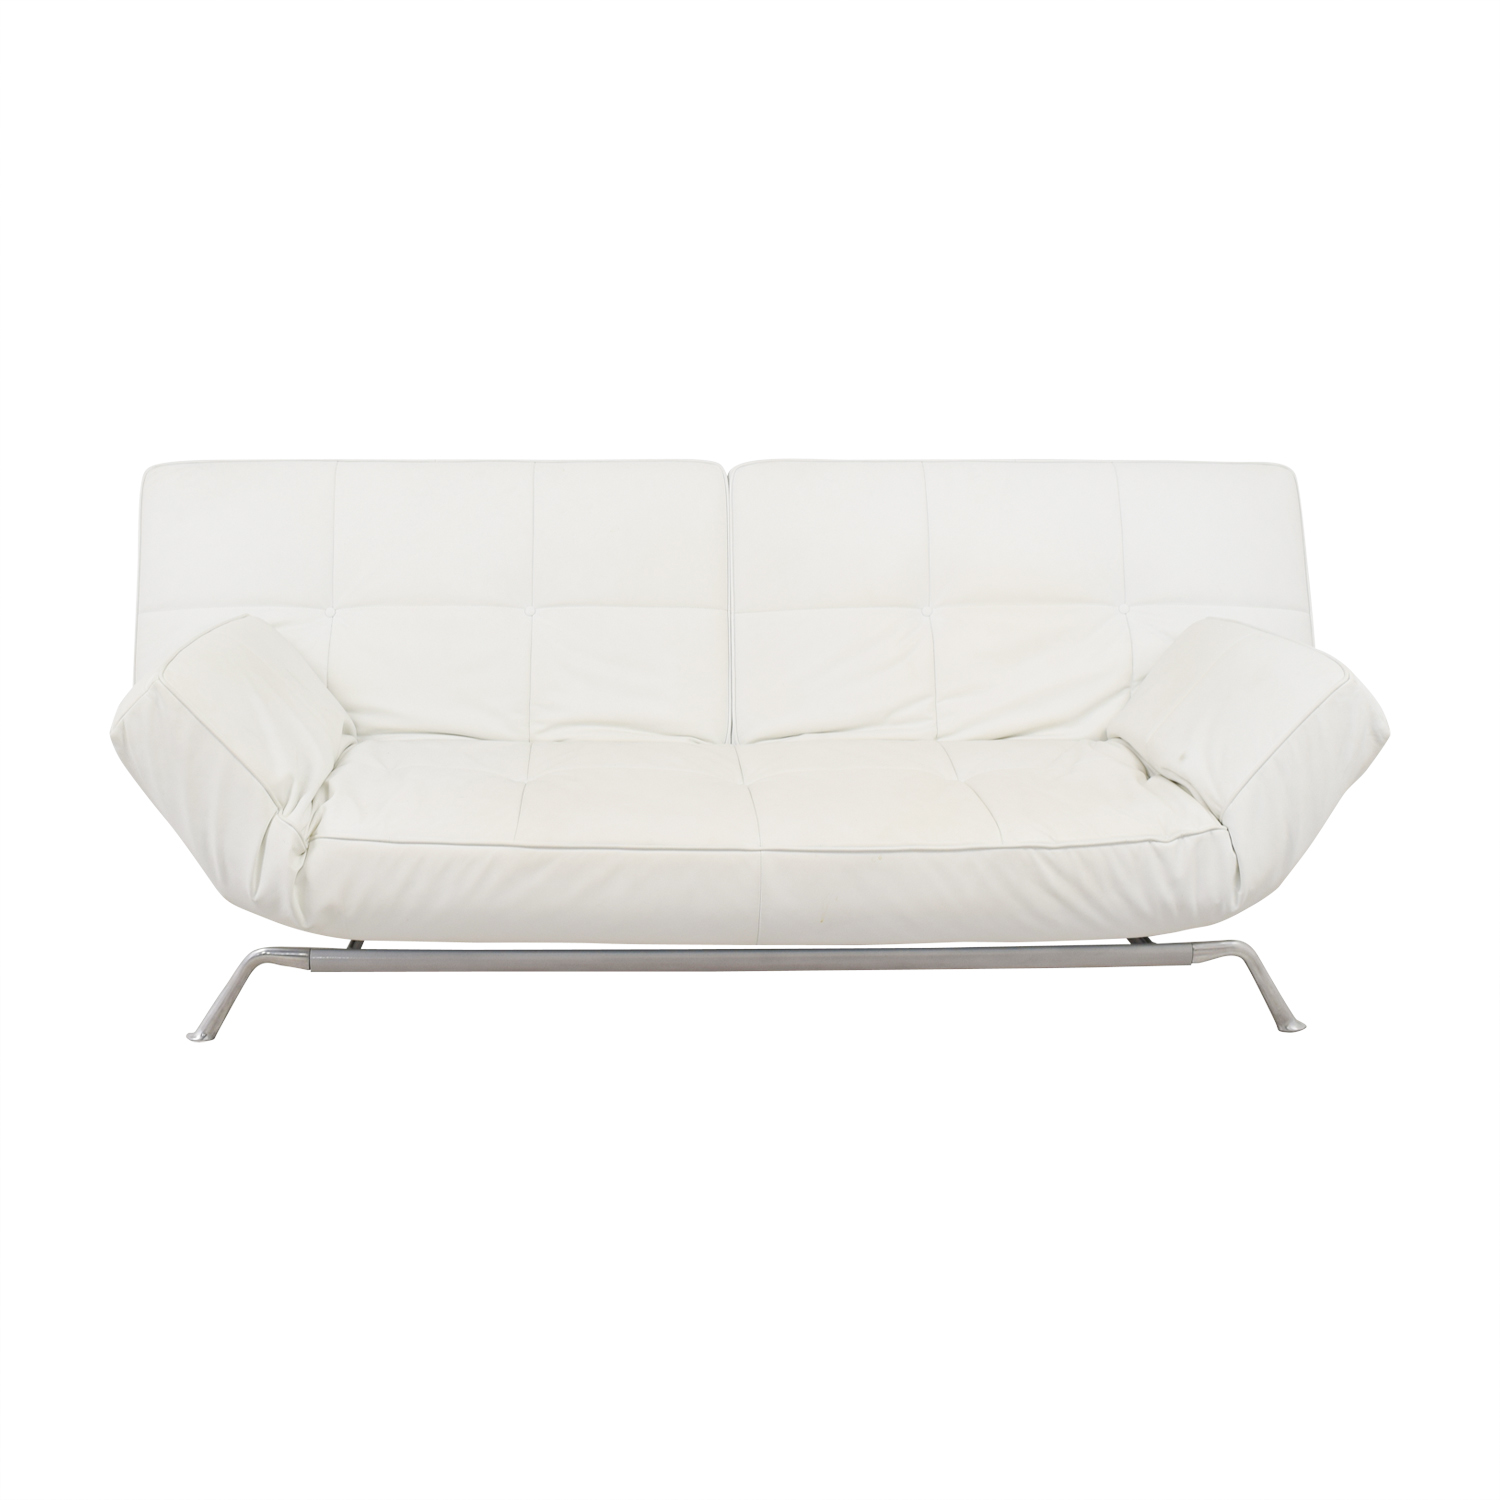 ligne roset sofa second hand living room sectional sofas sale 90 off white leather couch